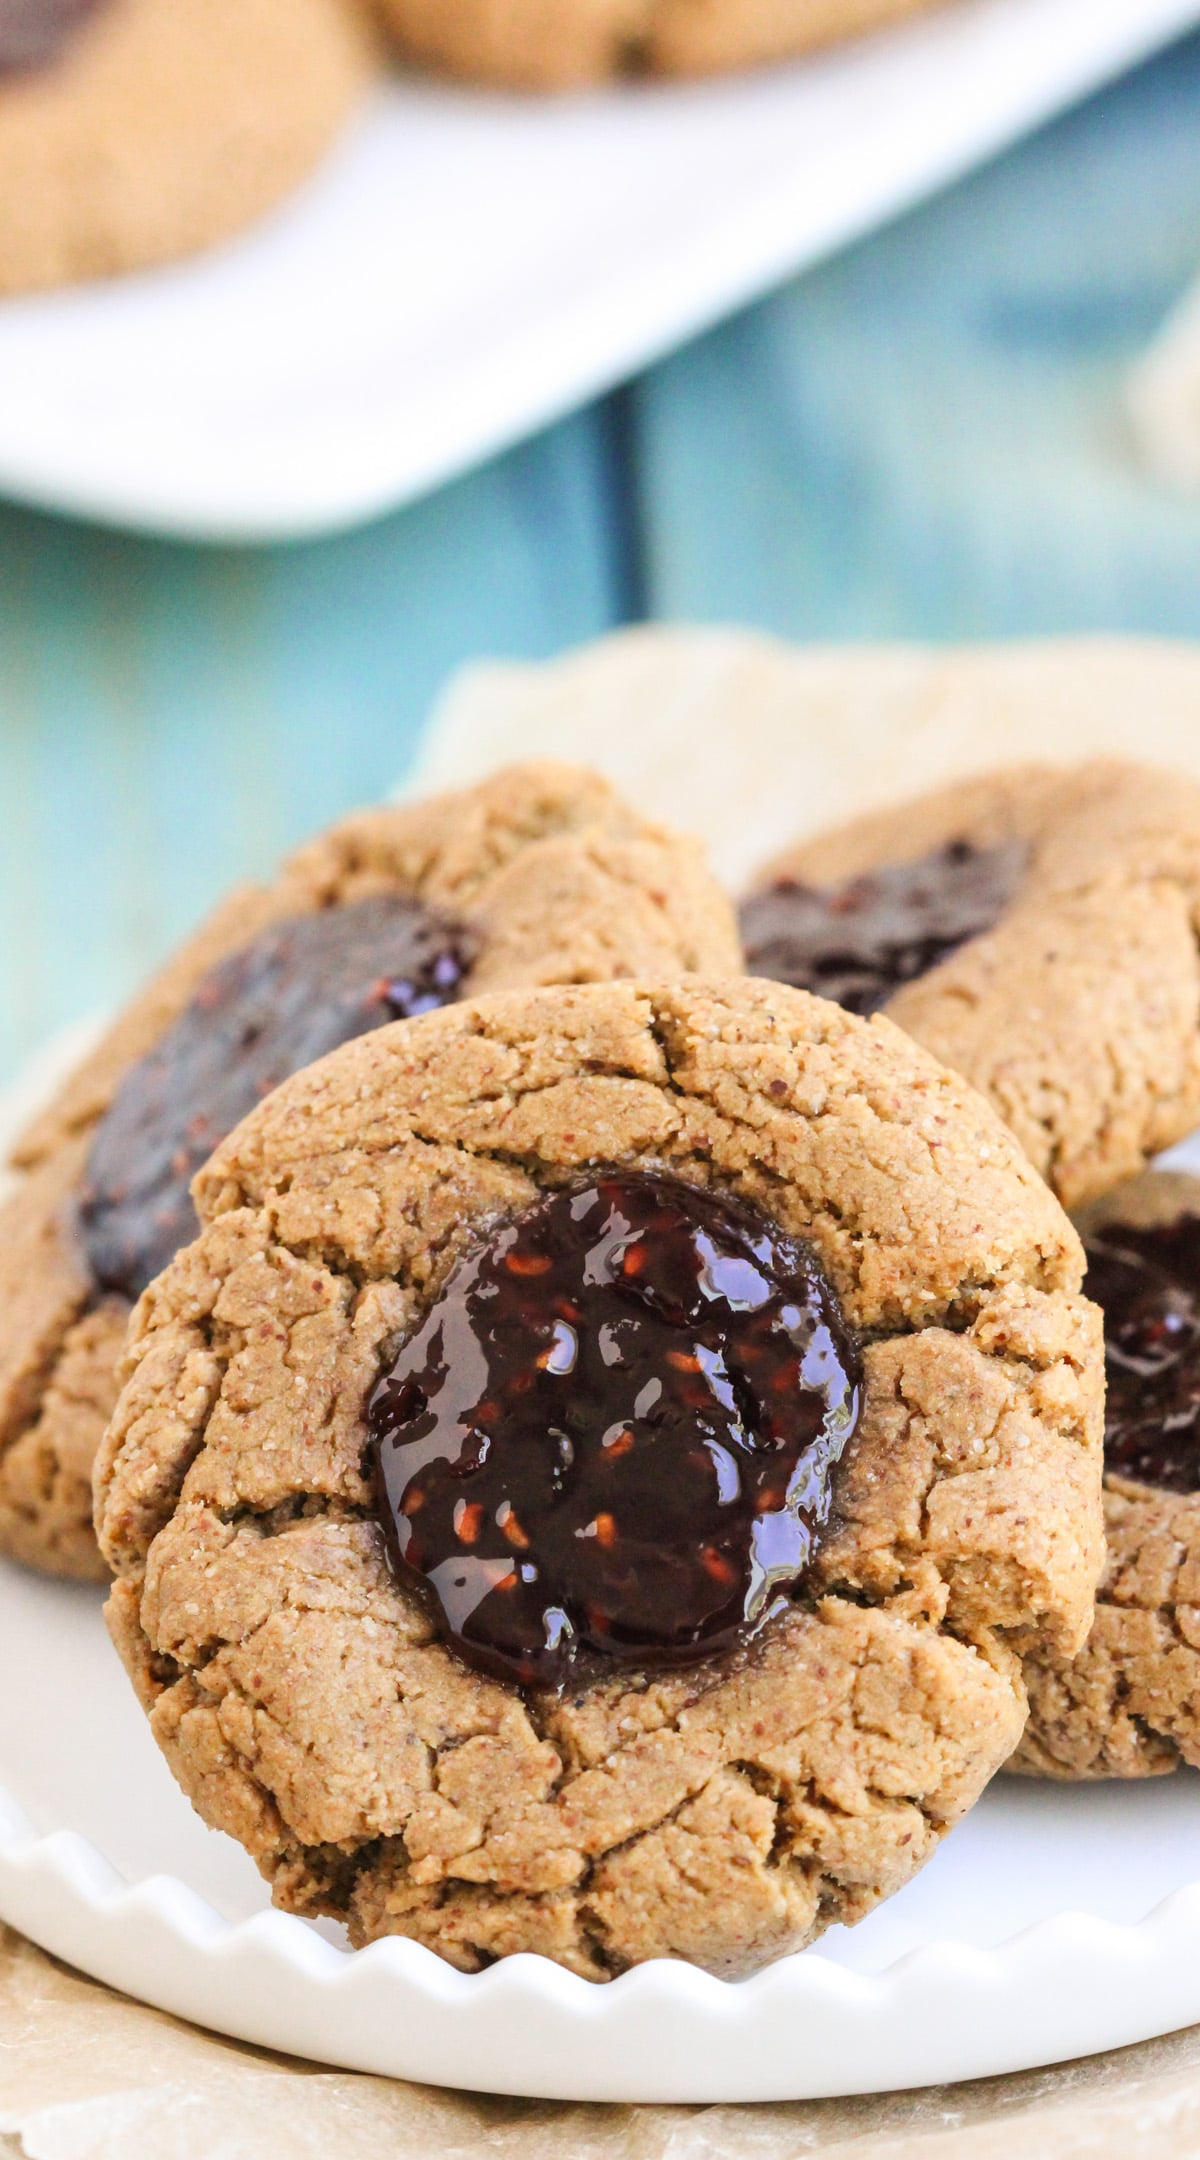 These soft and chewy 7-ingredient Healthy Thumbprint Cookies are so simple and delicious, you'd never know they're refined sugar free, gluten free, dairy free, and vegan! Healthy Dessert Recipes with low calorie, low fat, high protein, high fiber, and raw options at the Desserts With Benefits Blog (www.DessertsWithBenefits.com)